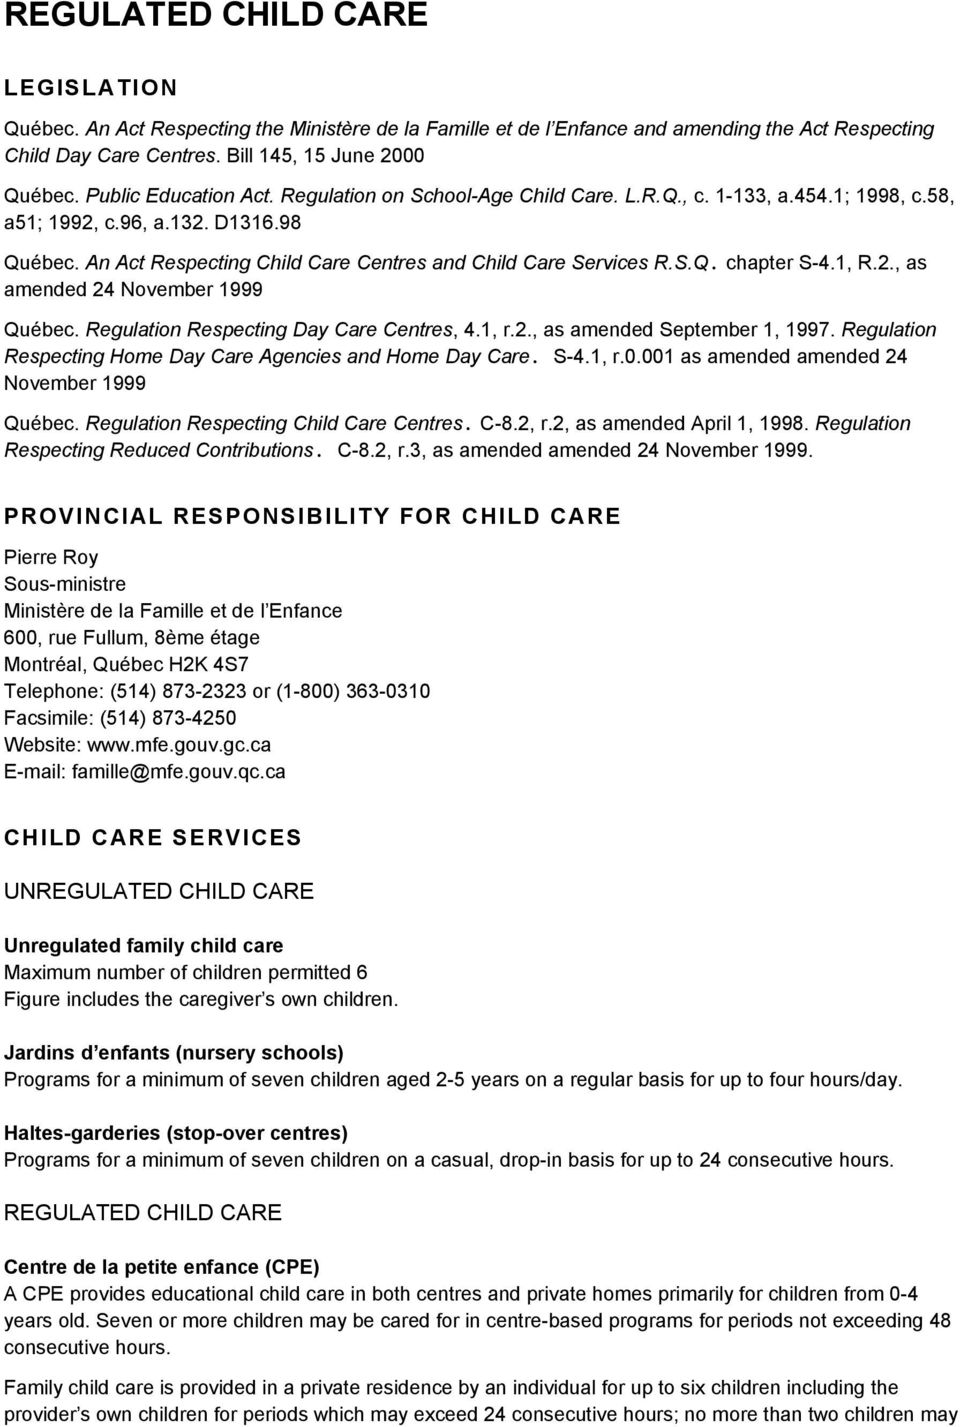 An Act Respecting Child Care Centres and Child Care Services R.S.Q. chapter S-4.1, R.2., as amended 24 November 1999 Québec. Regulation Respecting Day Care Centres, 4.1, r.2., as amended September 1, 1997.